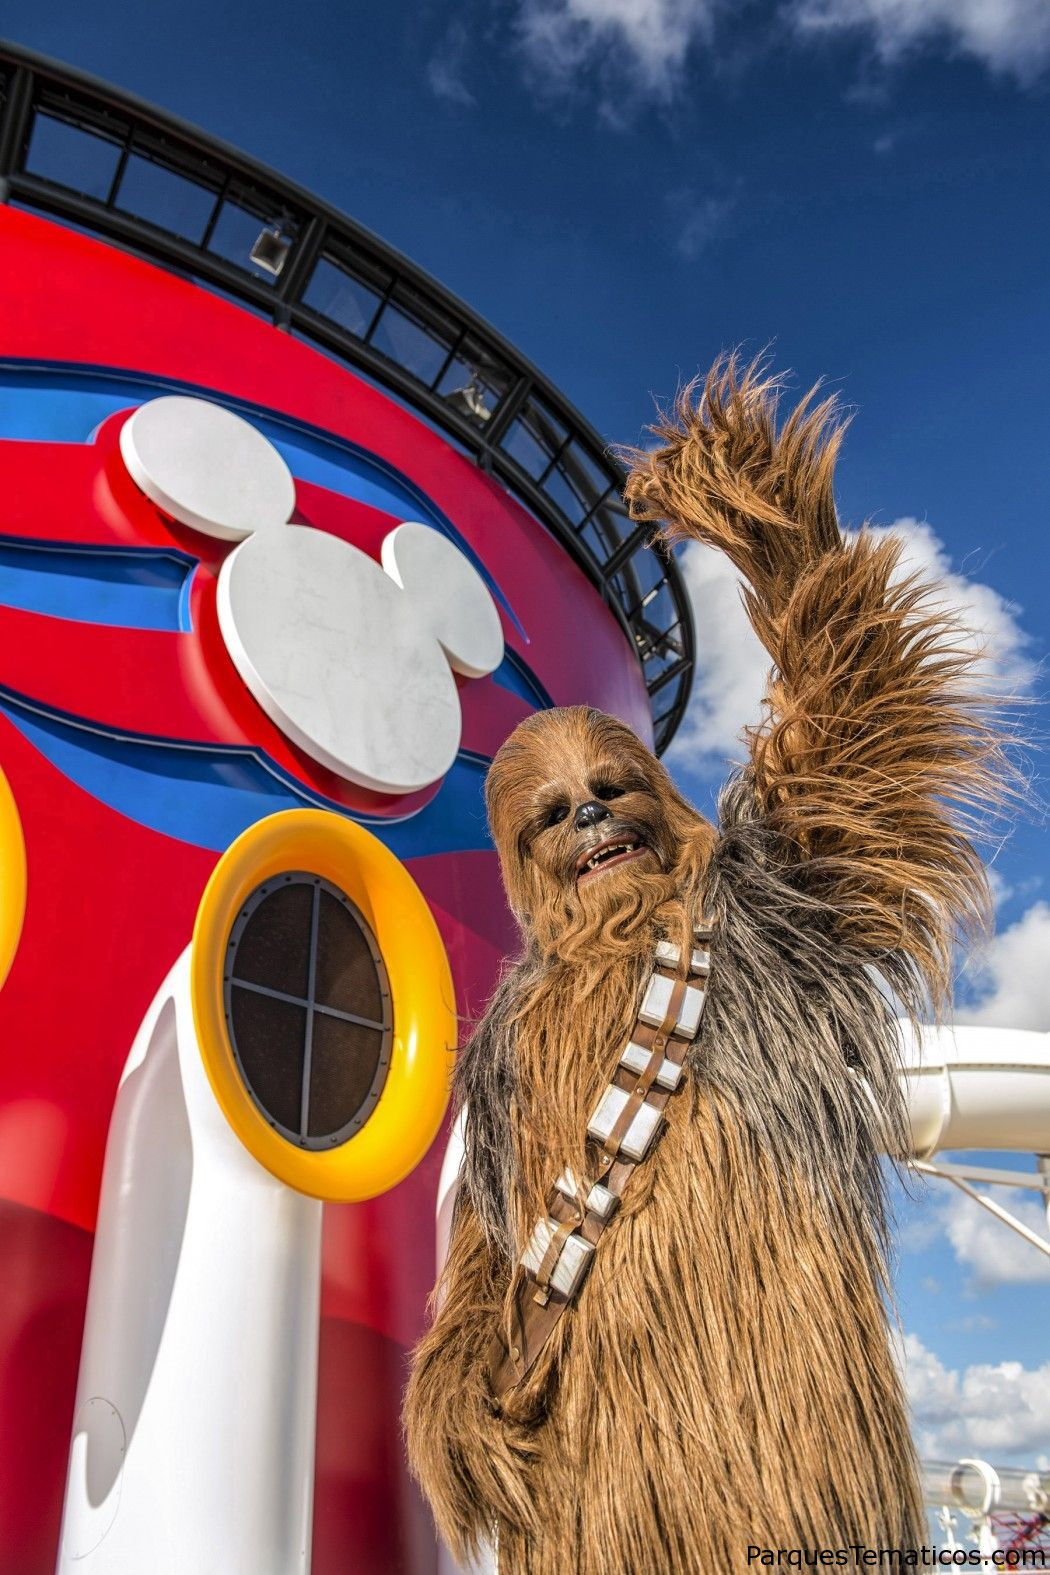 Star Wars Day at Sea vuelve en 2021 con Galactic Adventures en Disney Cruise Line